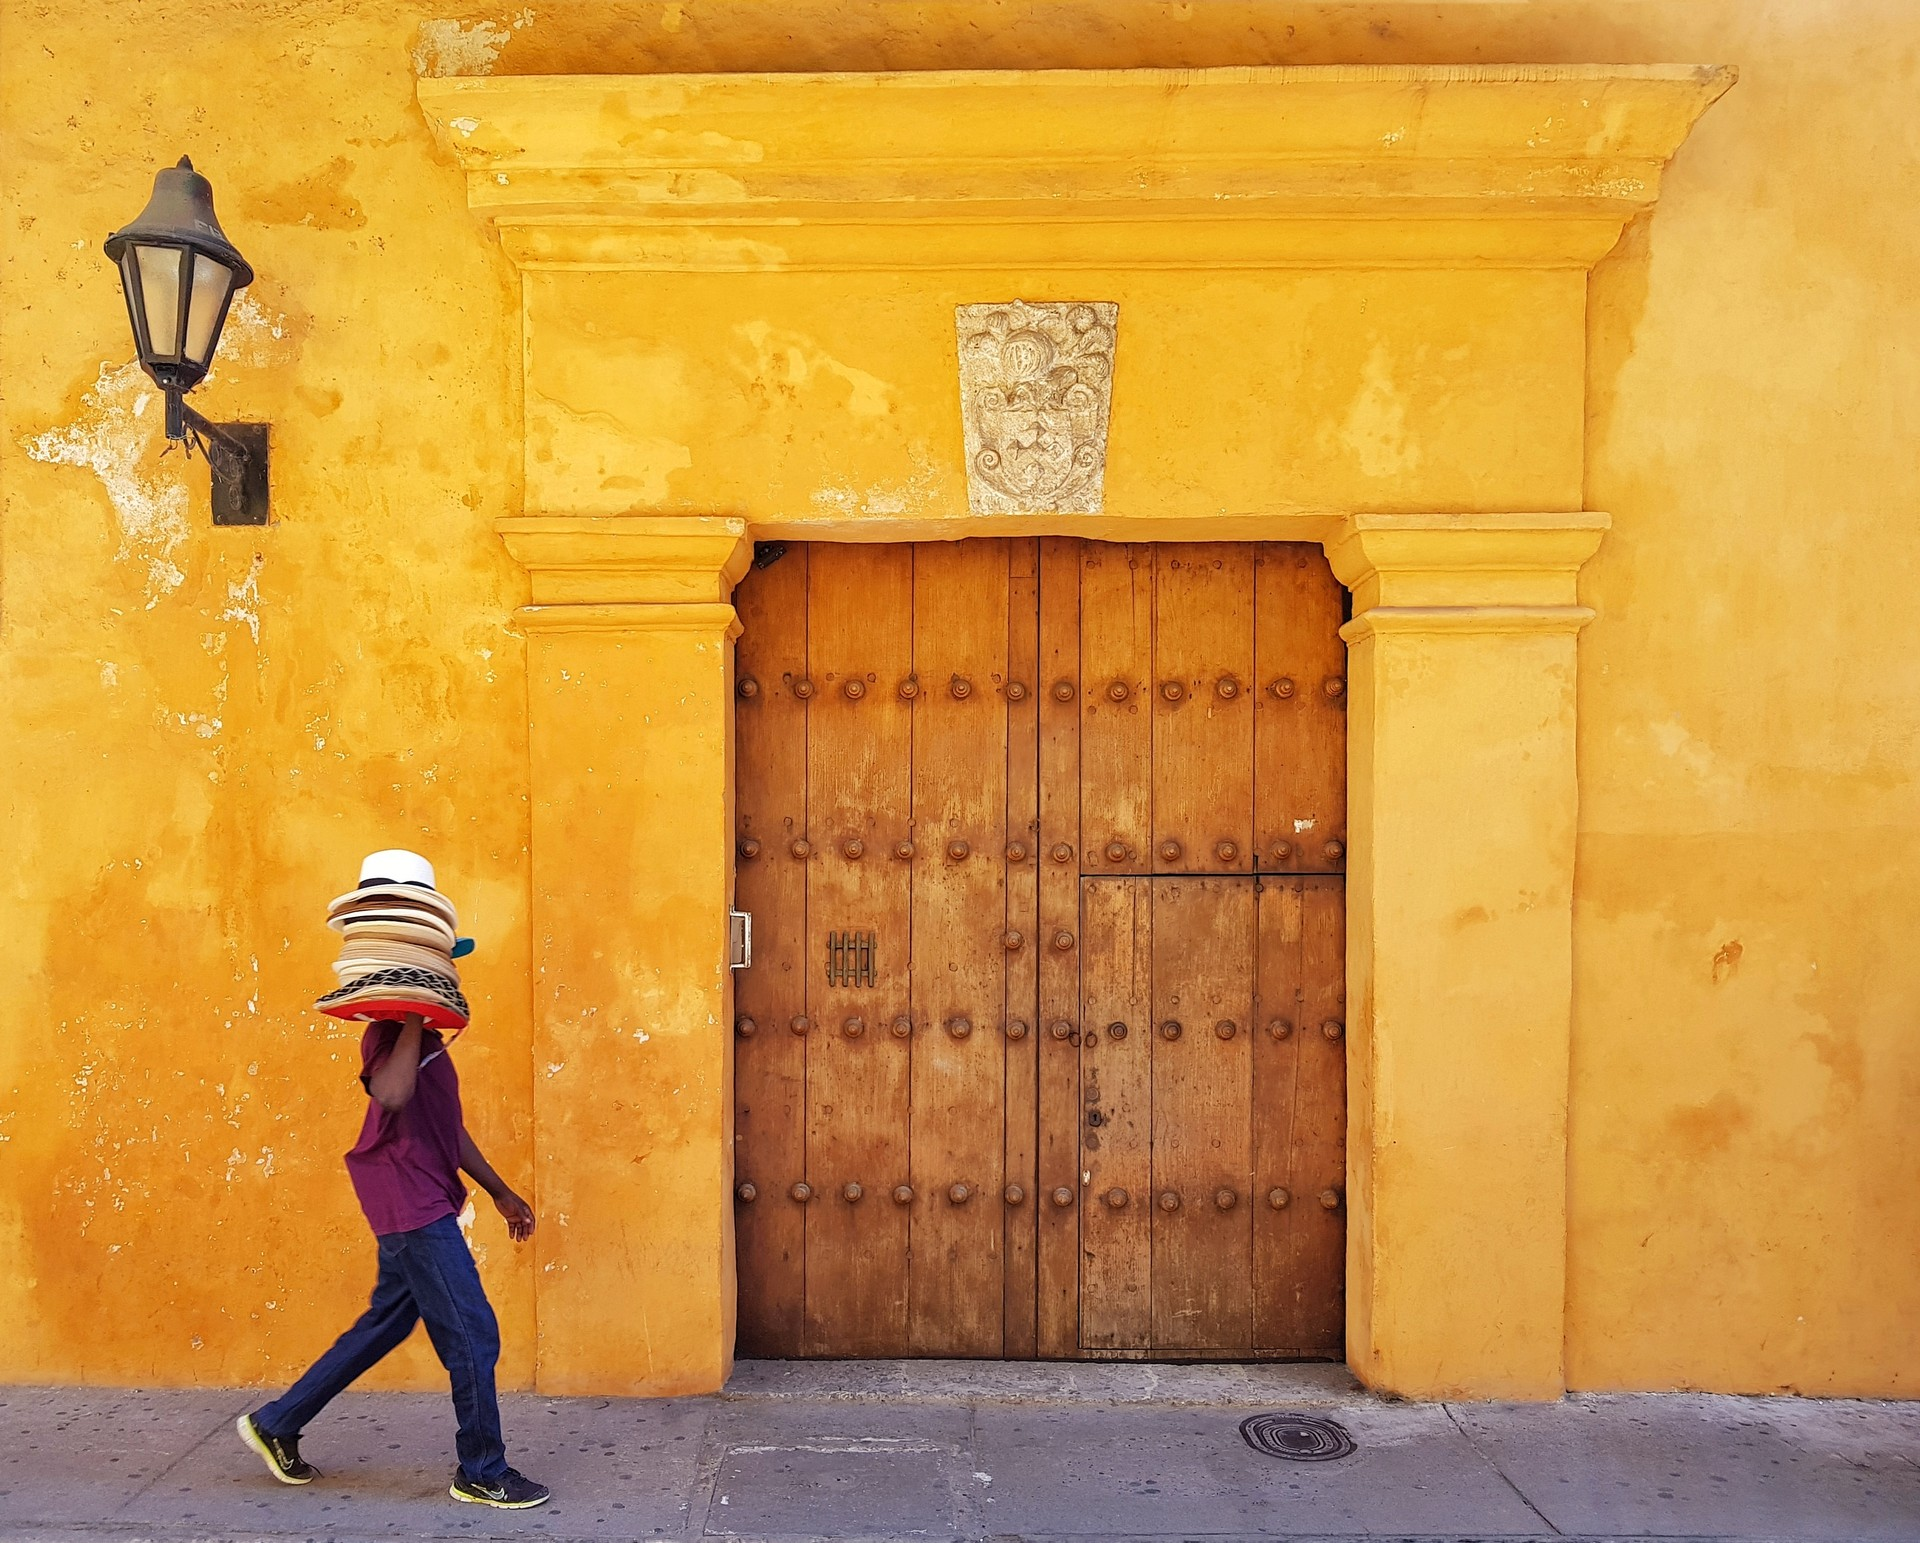 Hat seller in Cartagena, Colombia